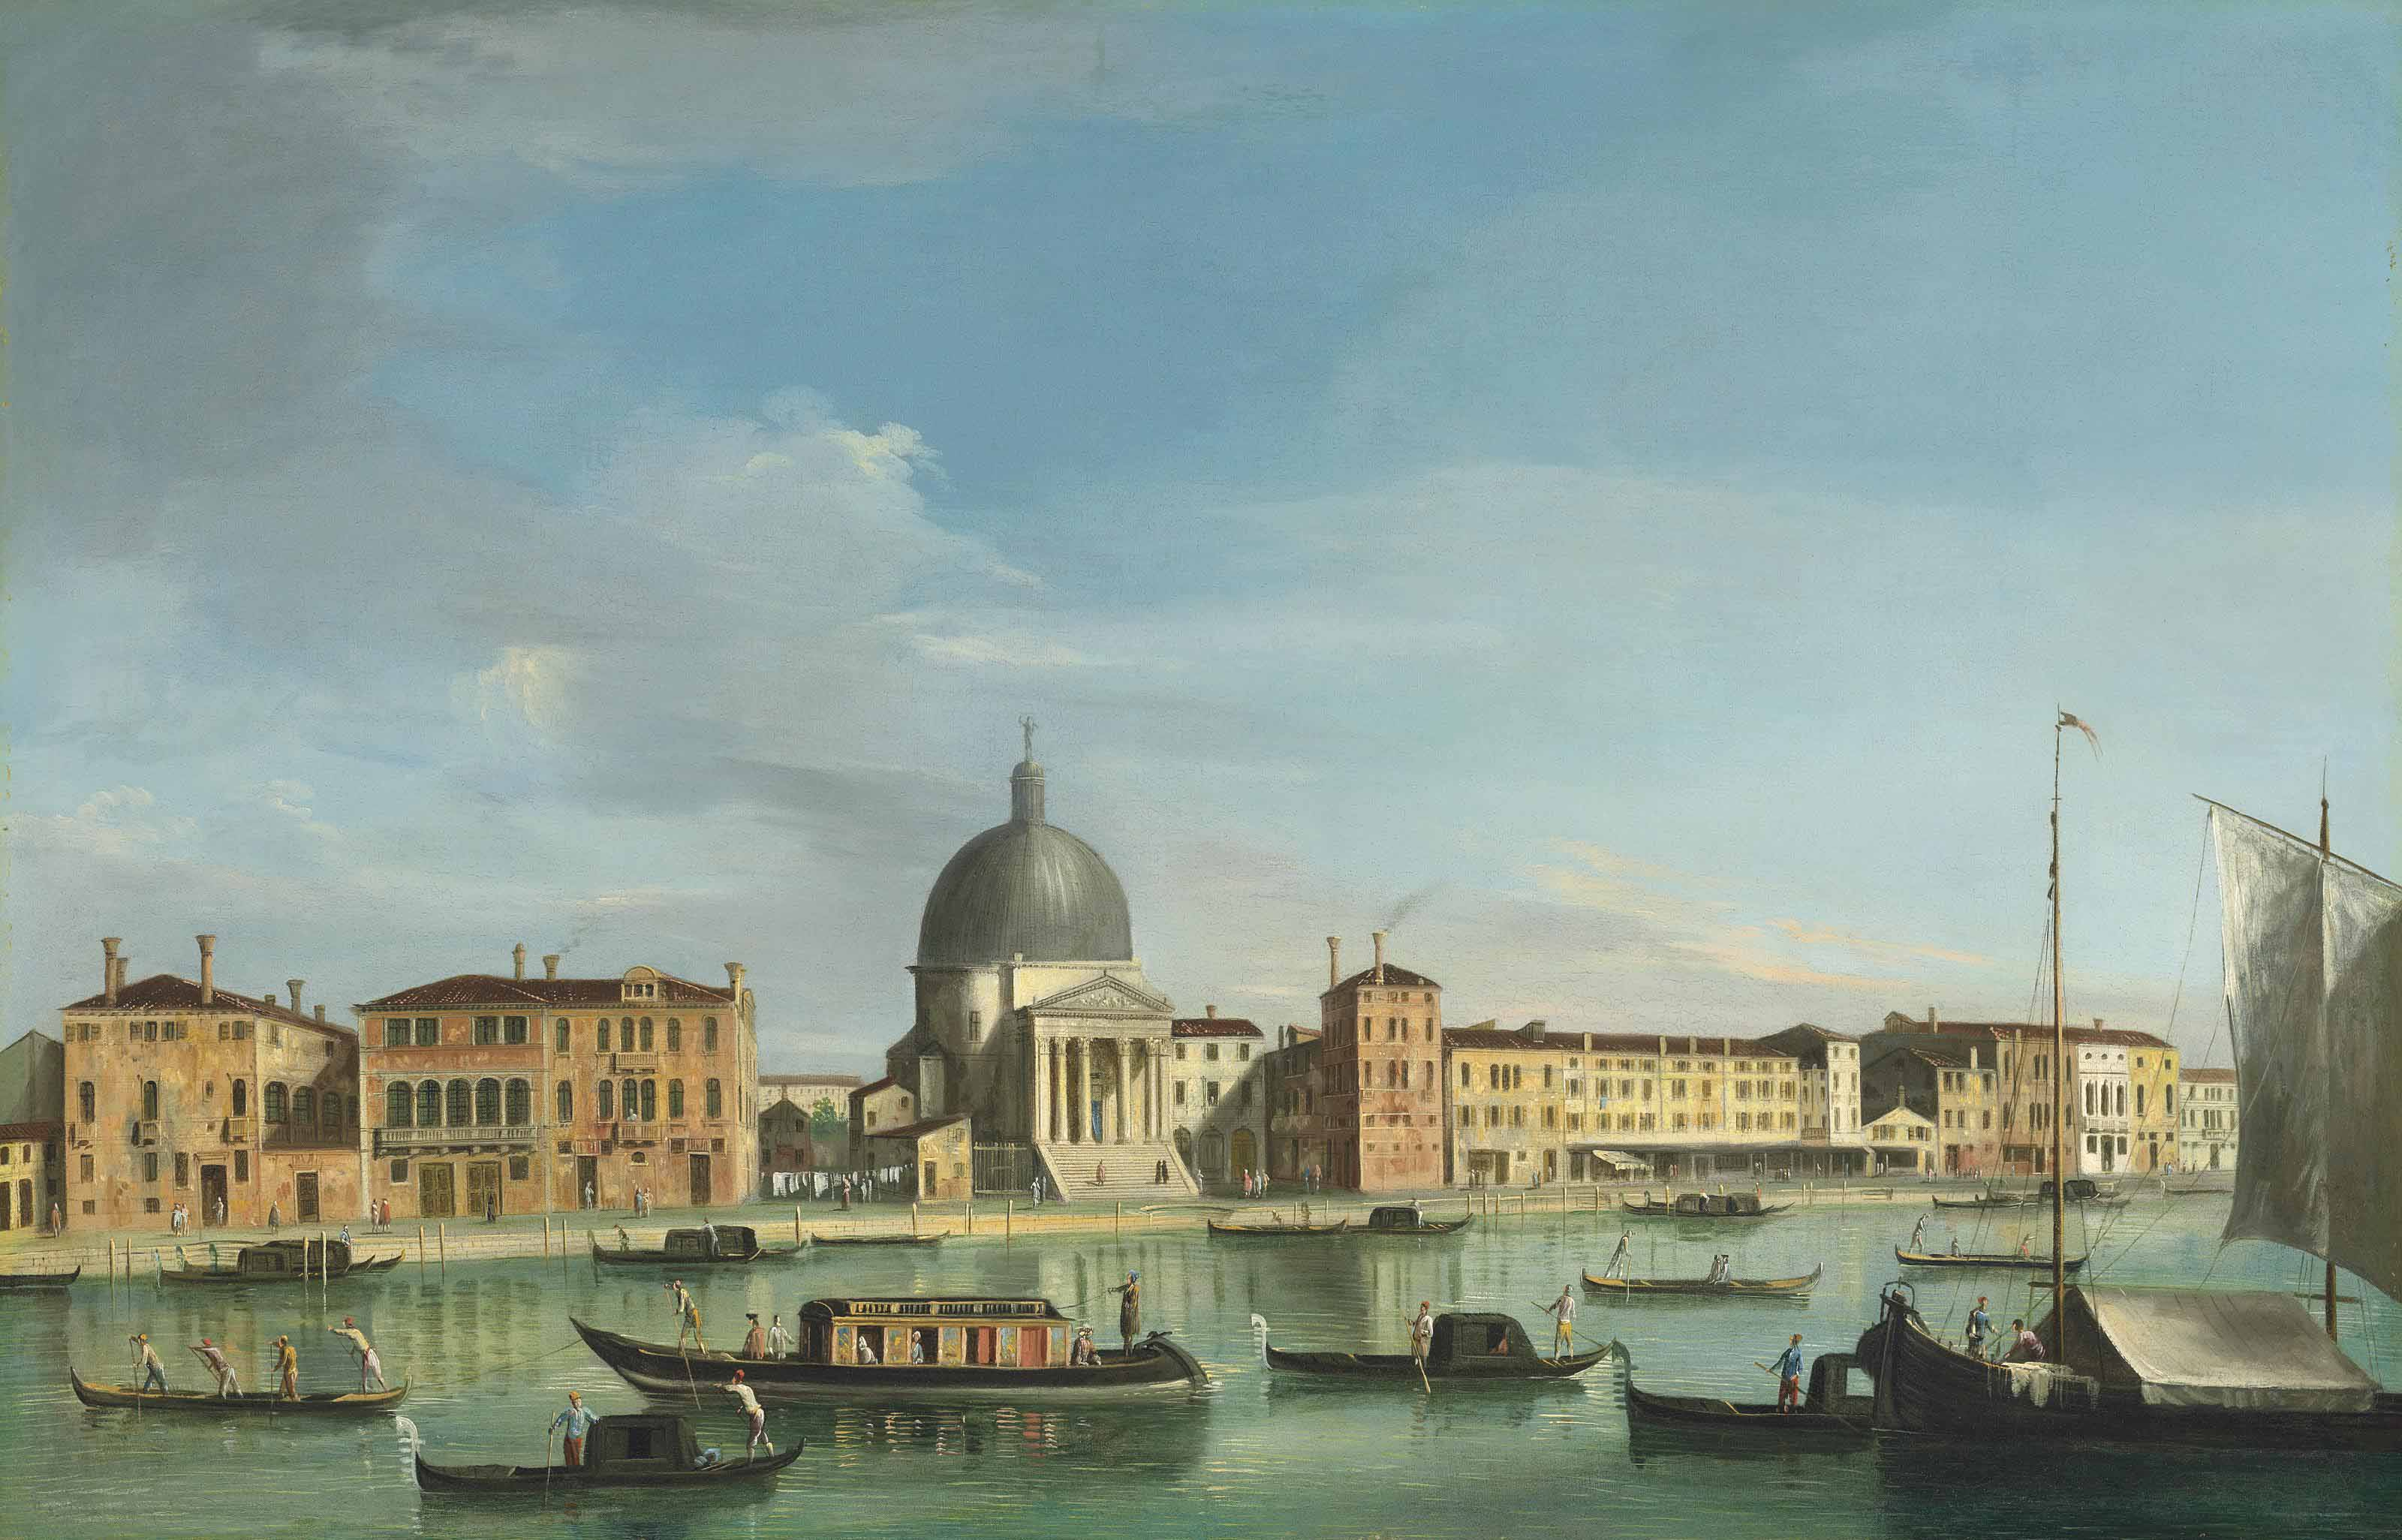 The Grand Canal, Venice, looking west towards San Simeone Piccolo